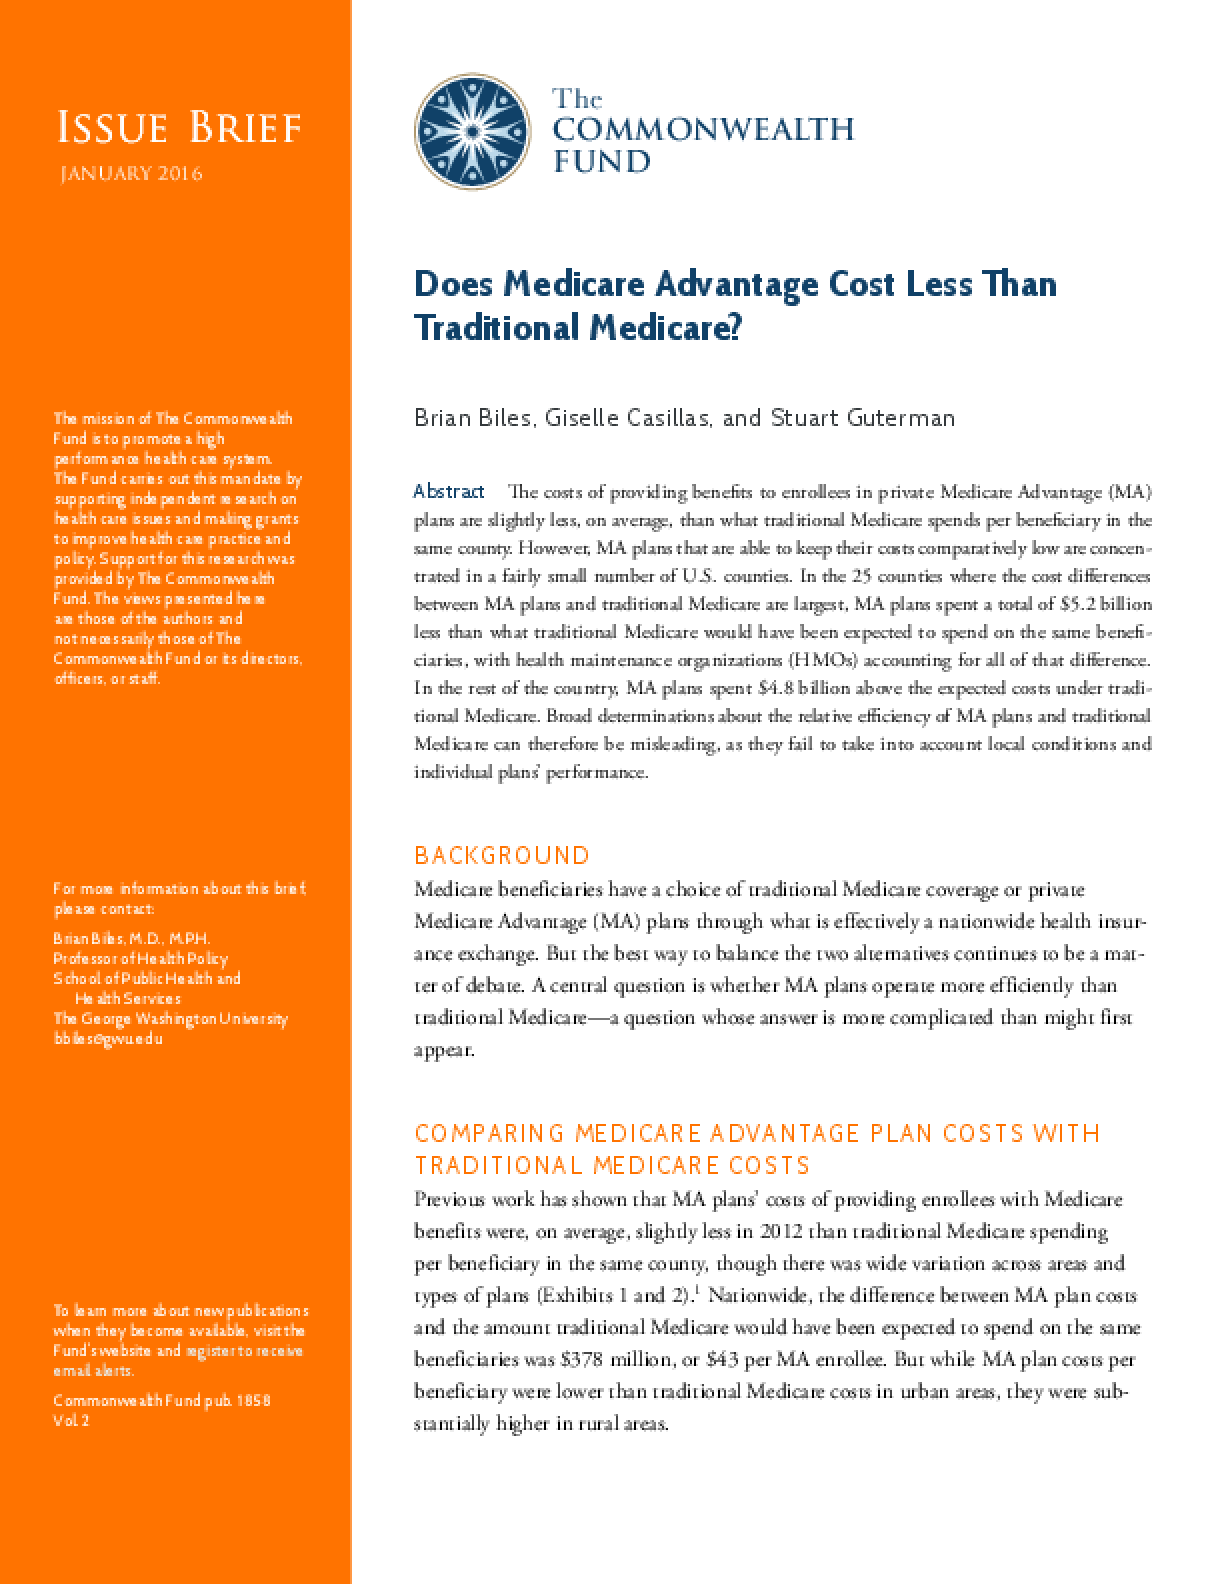 Are Medicare Advantage Plans Lower-Cost Than Traditional Medicare?